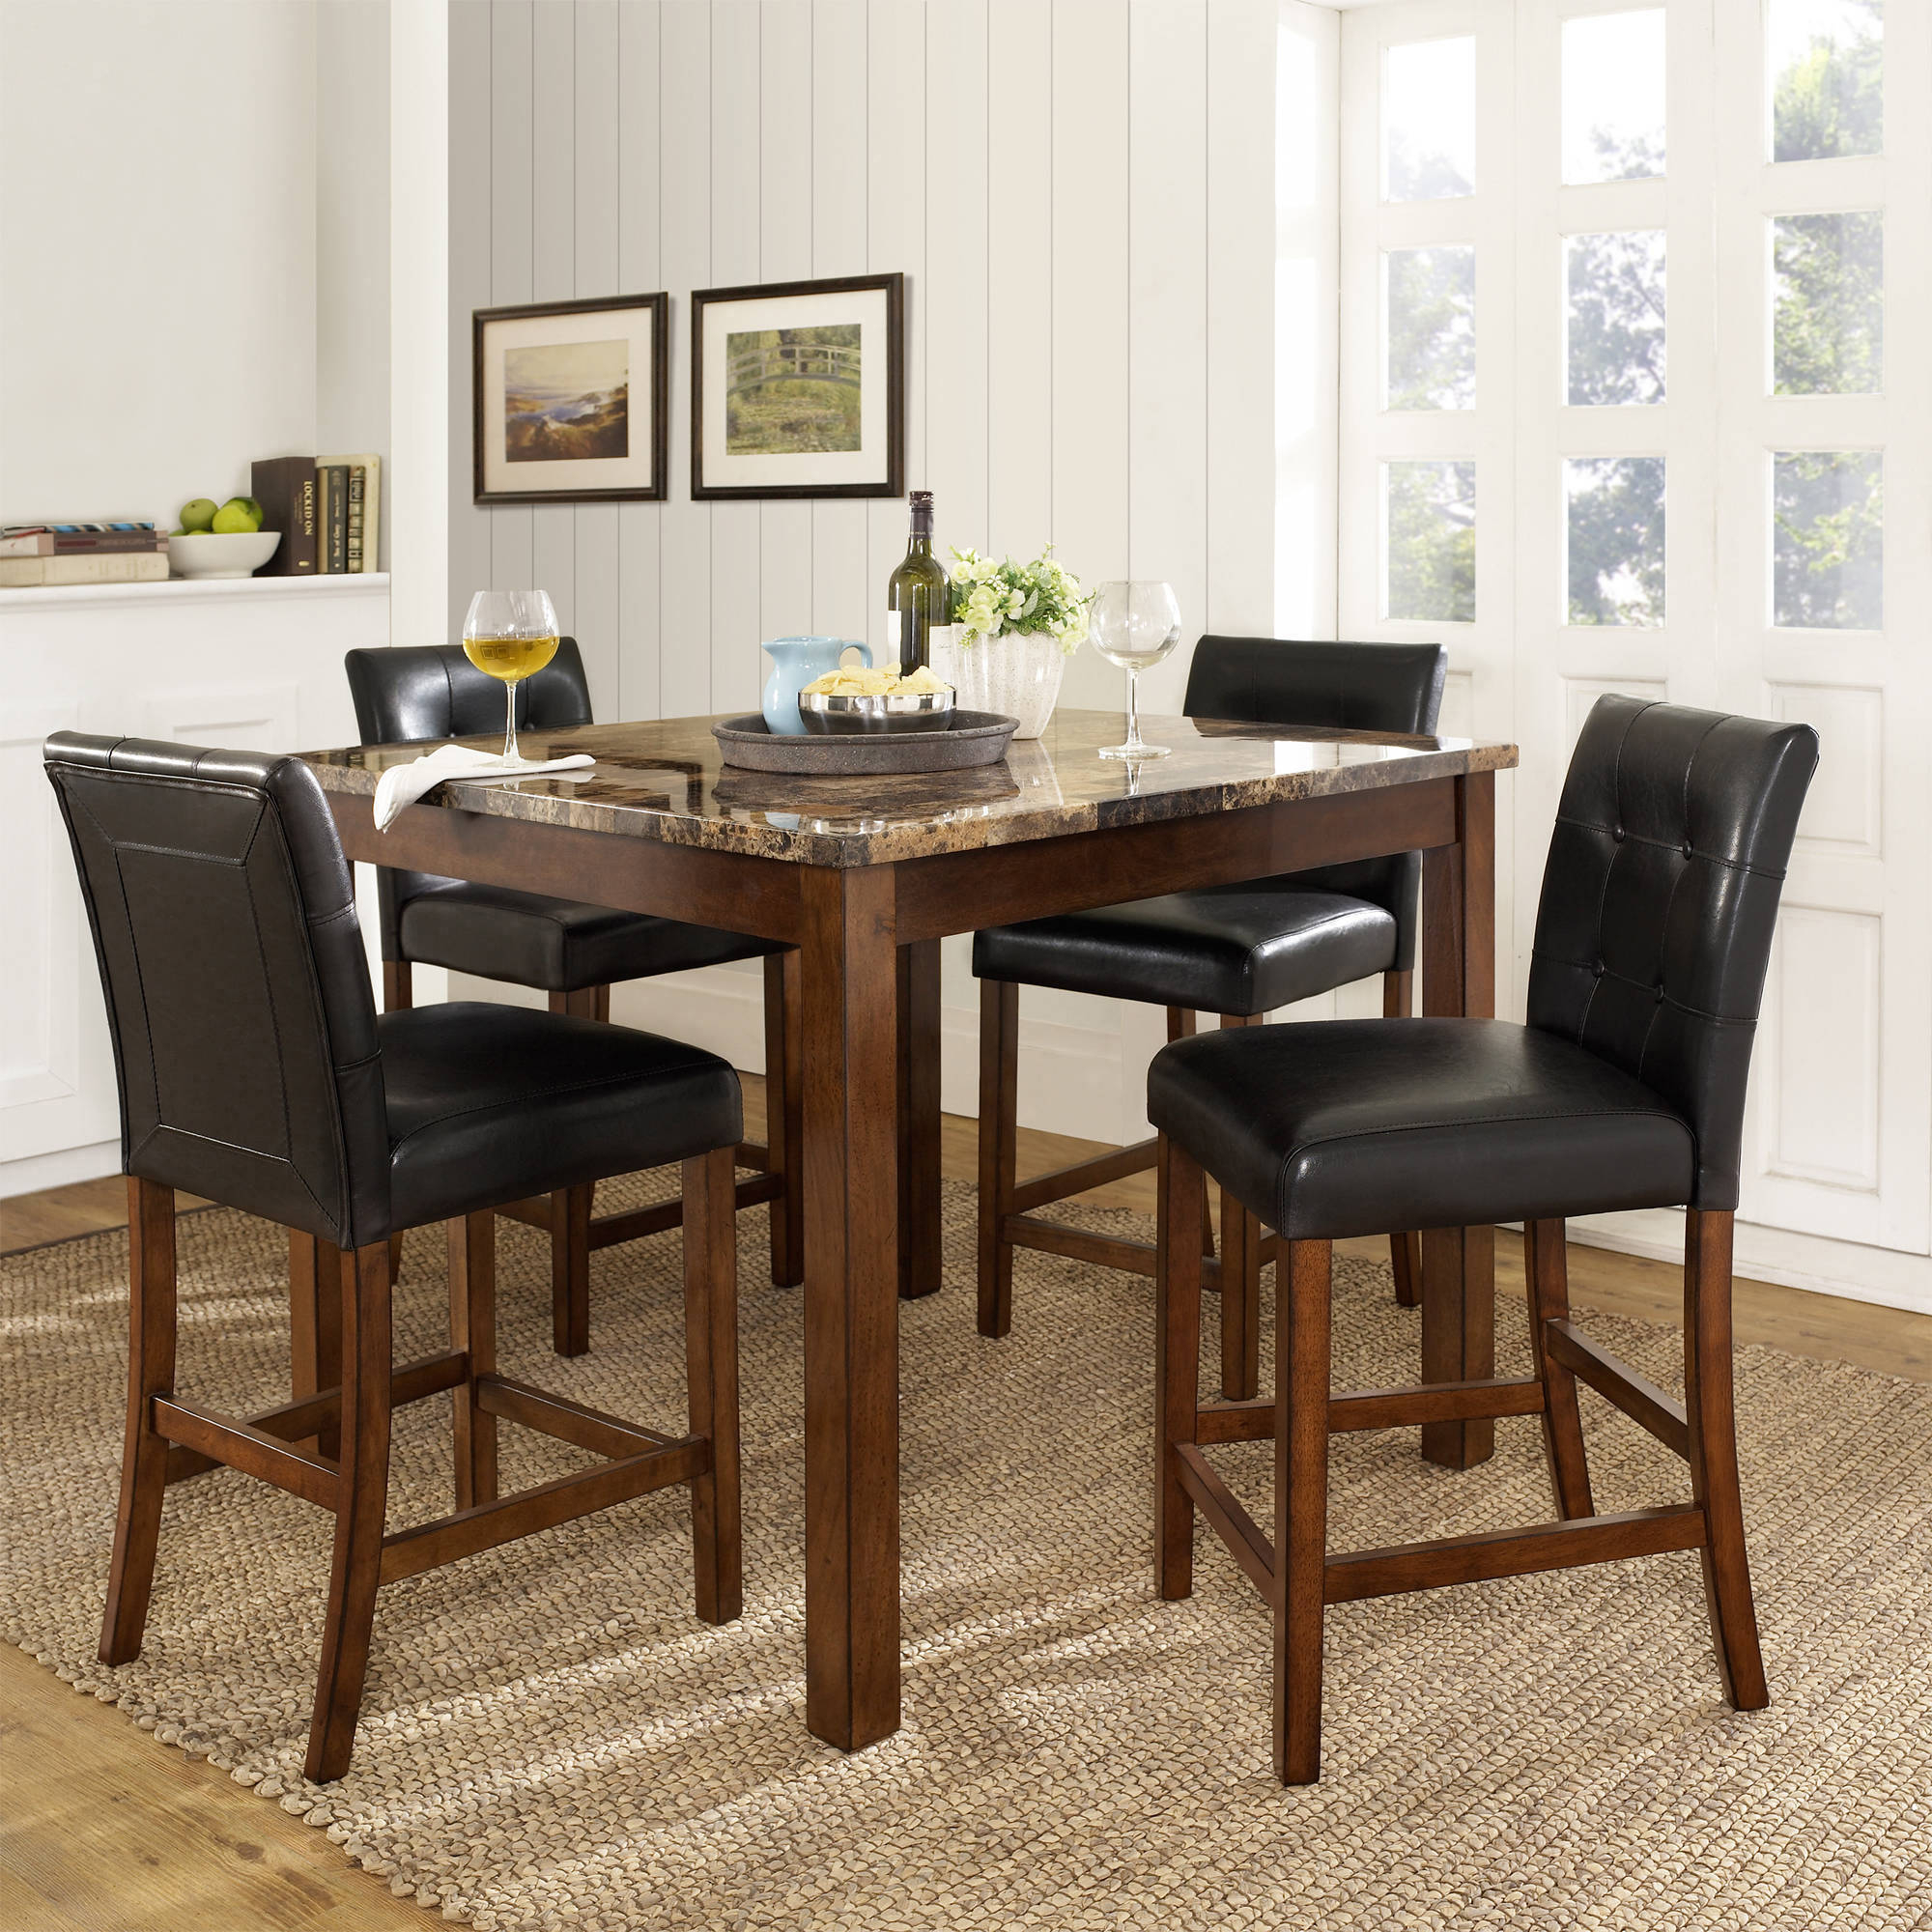 Counter Height Kitchen Table And Chair Set – Furniture & Interior Throughout Most Recent Rossi 5 Piece Dining Sets (Image 6 of 20)